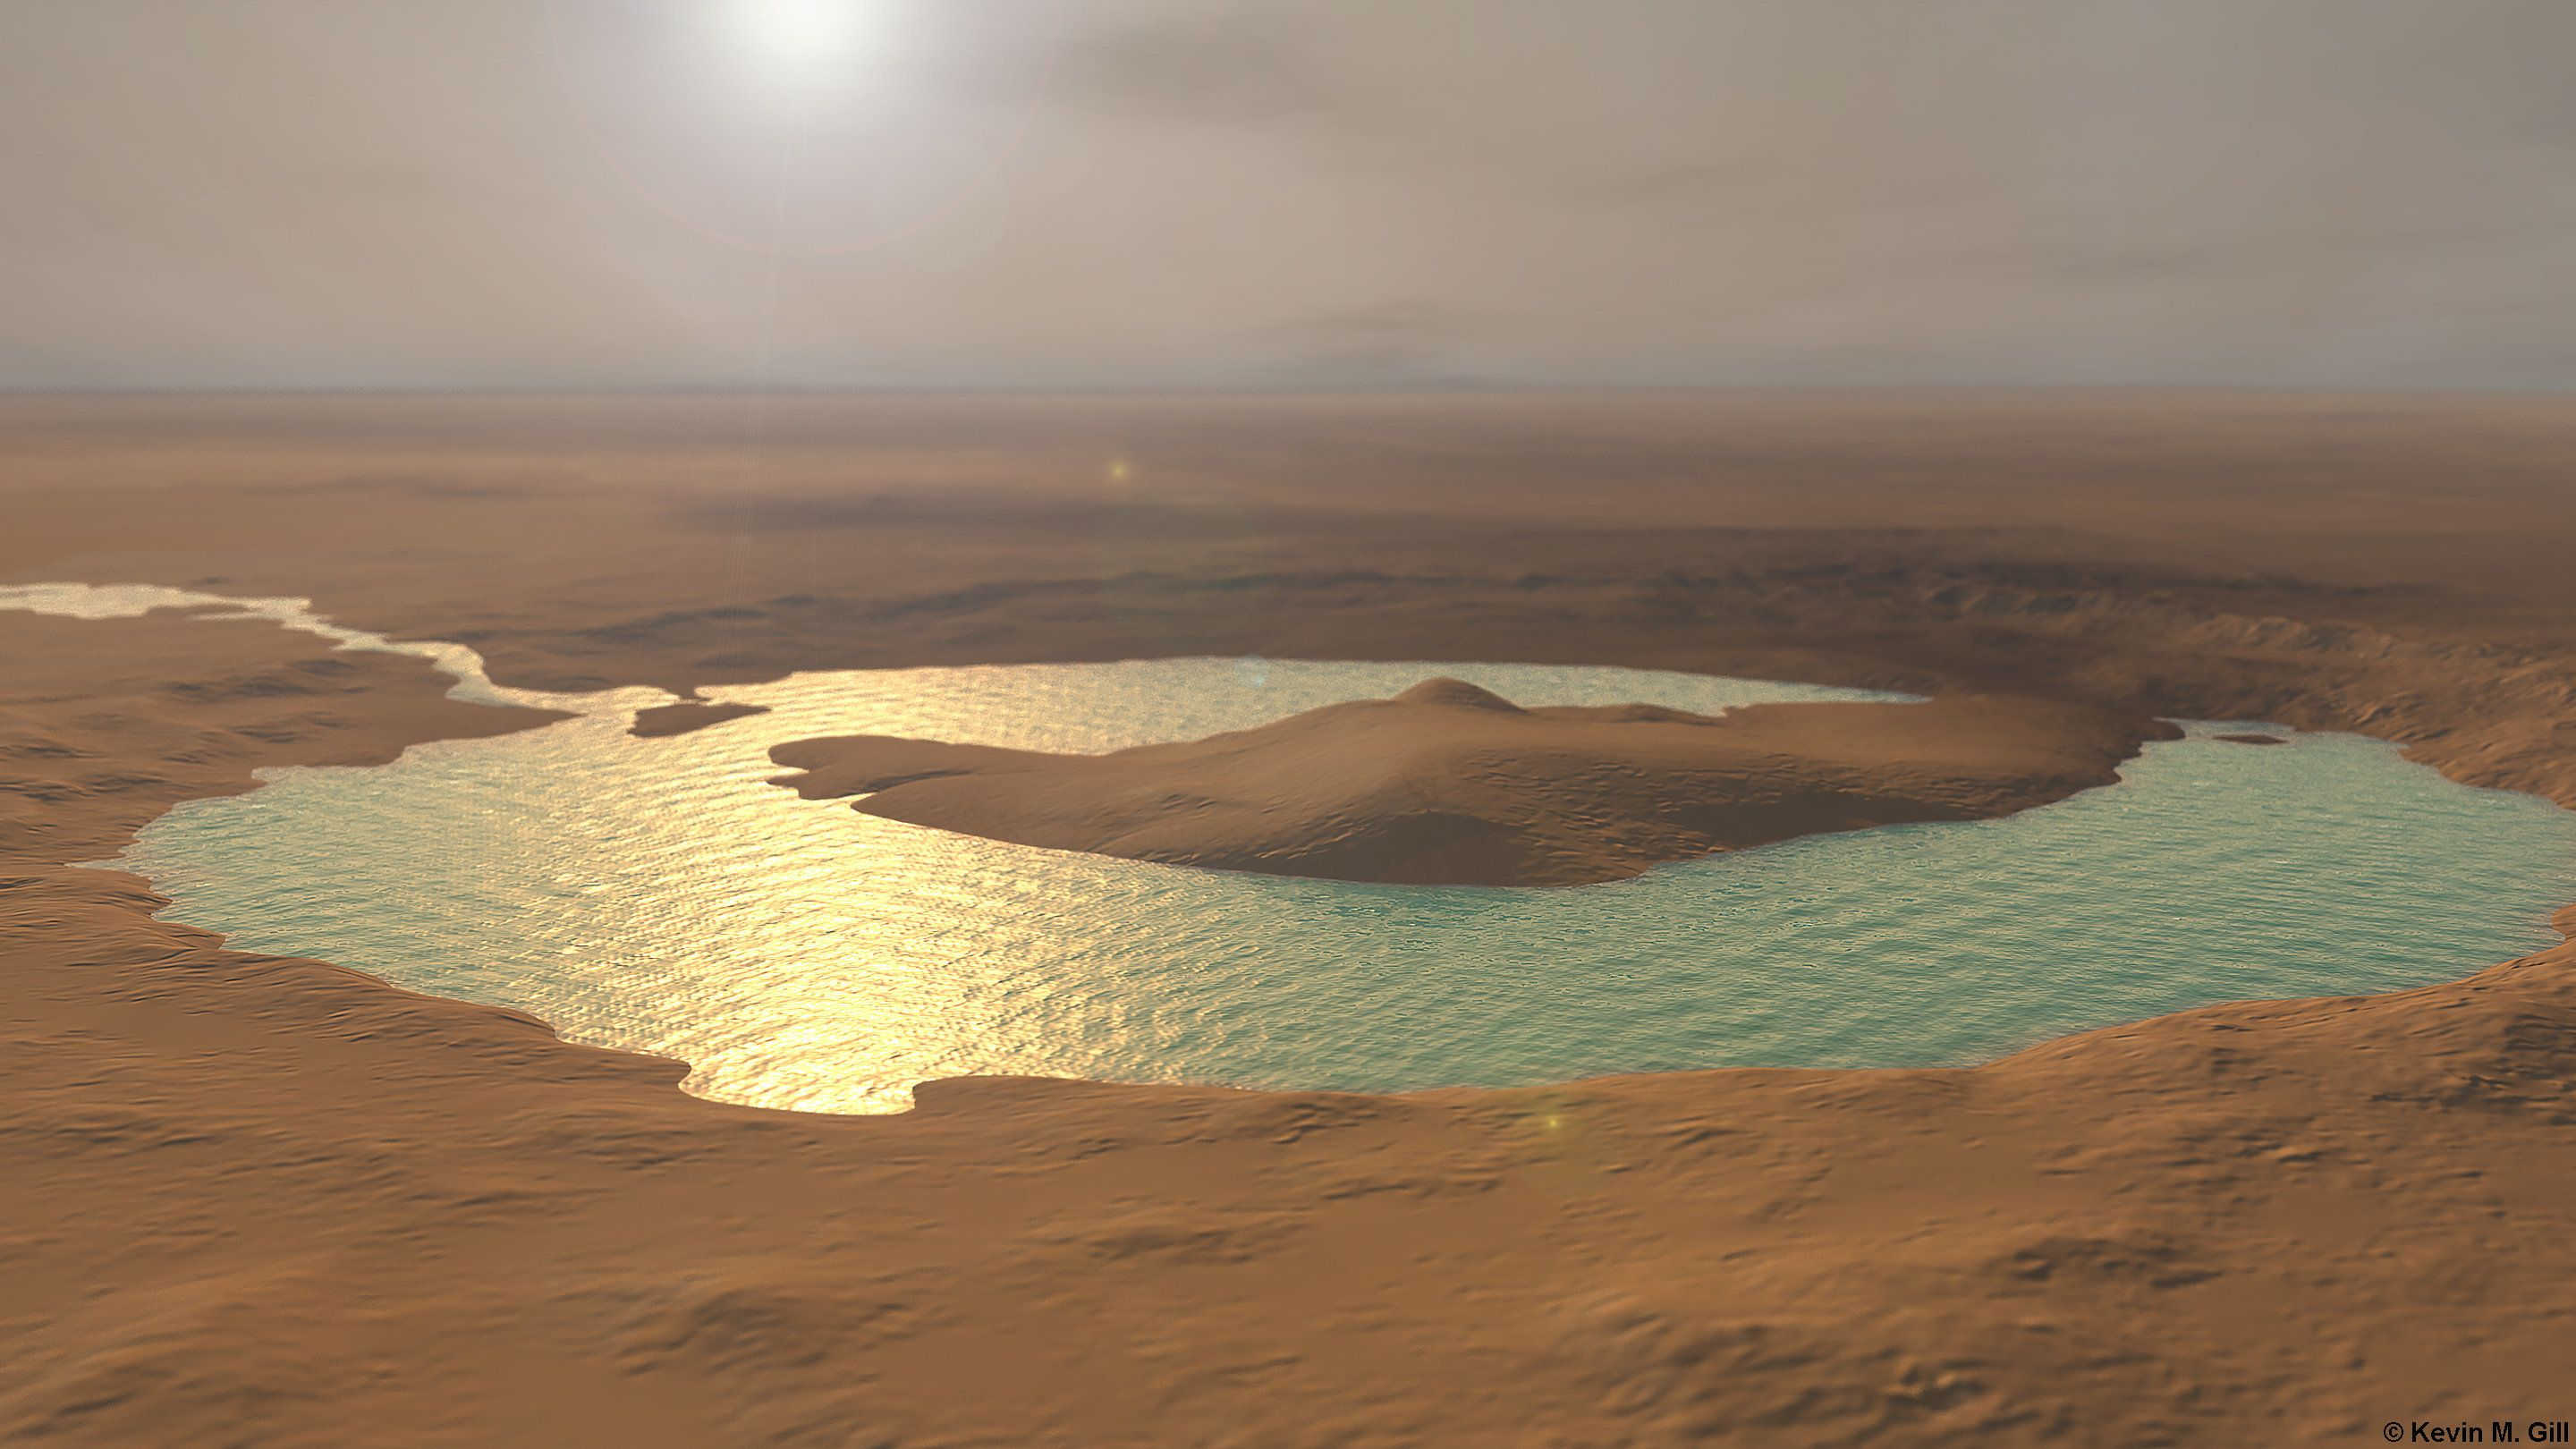 An animation of how the Gale Crater on Mars may have looked more than 3 billion years ago.